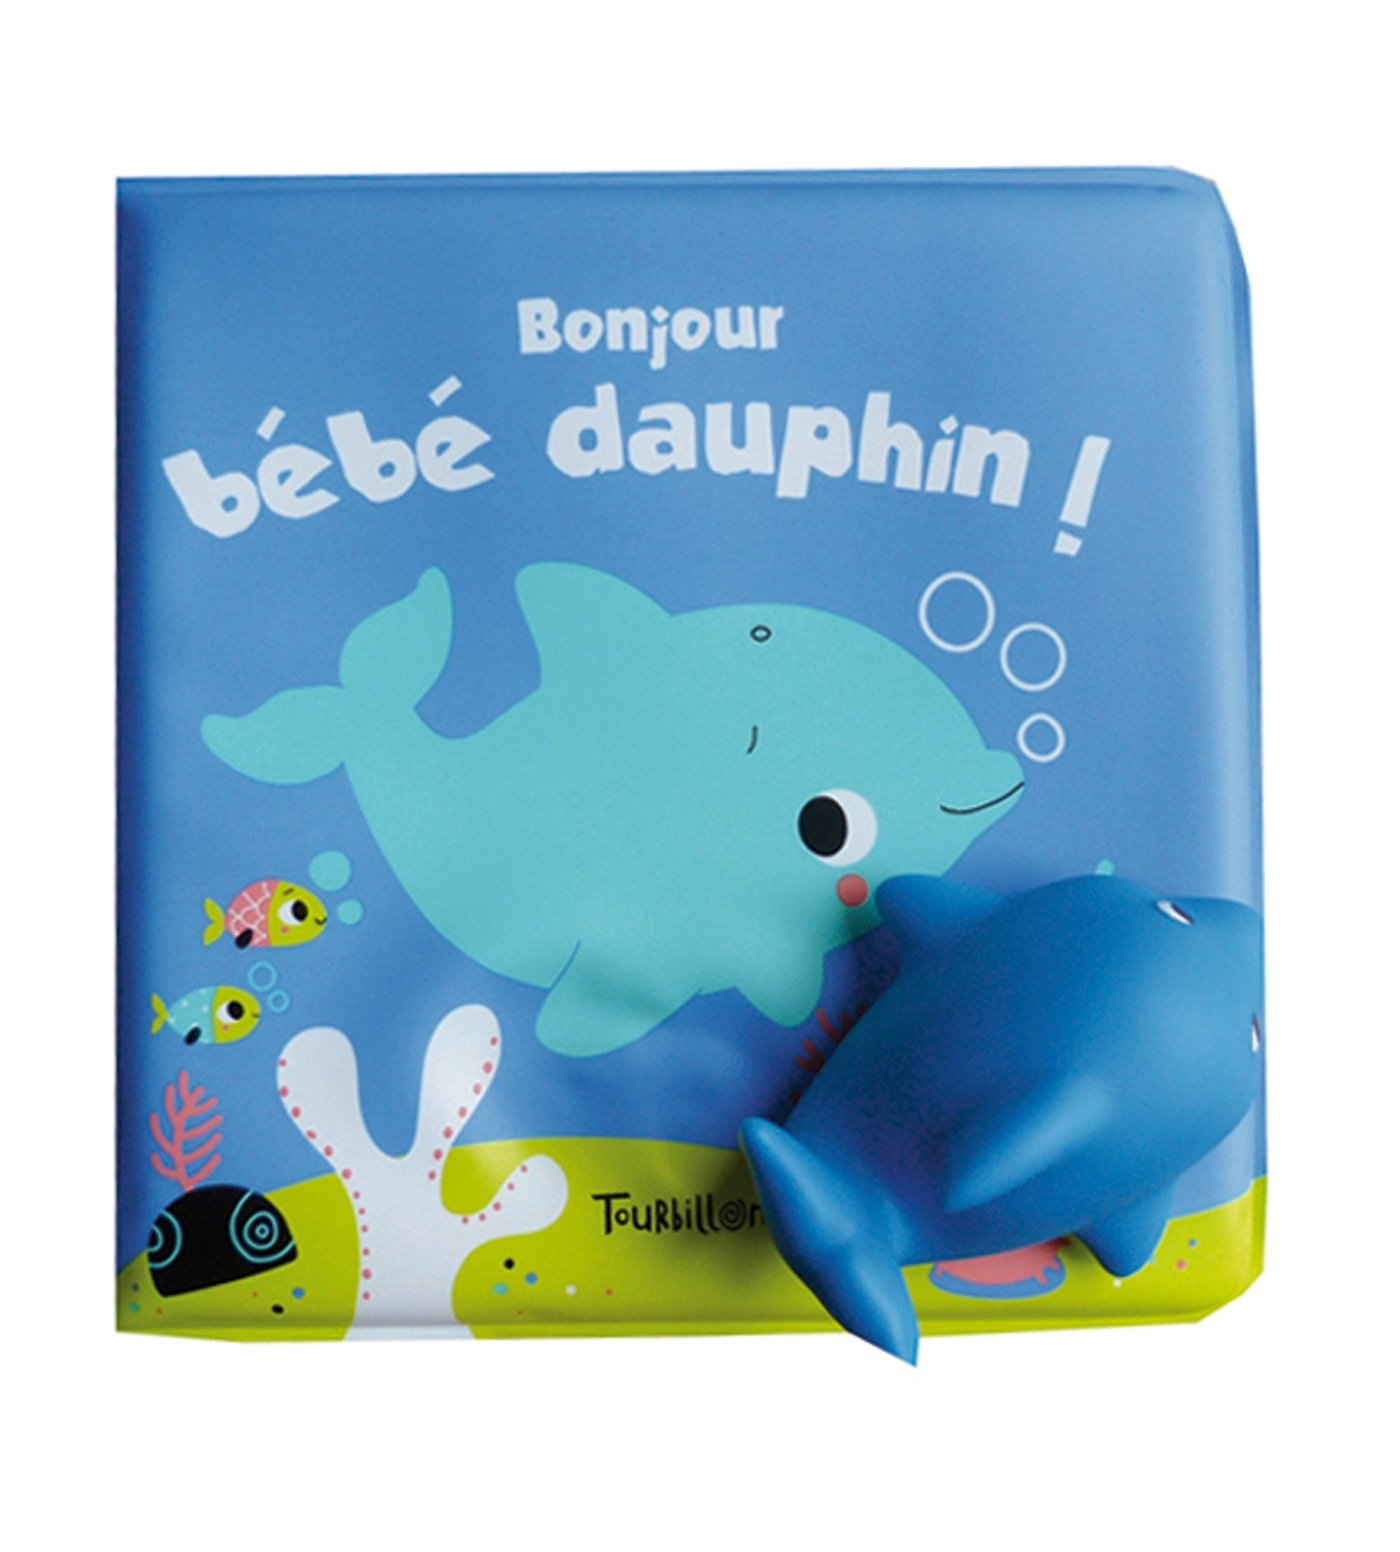 Bonjour Bebe Dauphin Tb Livres Bain French Edition